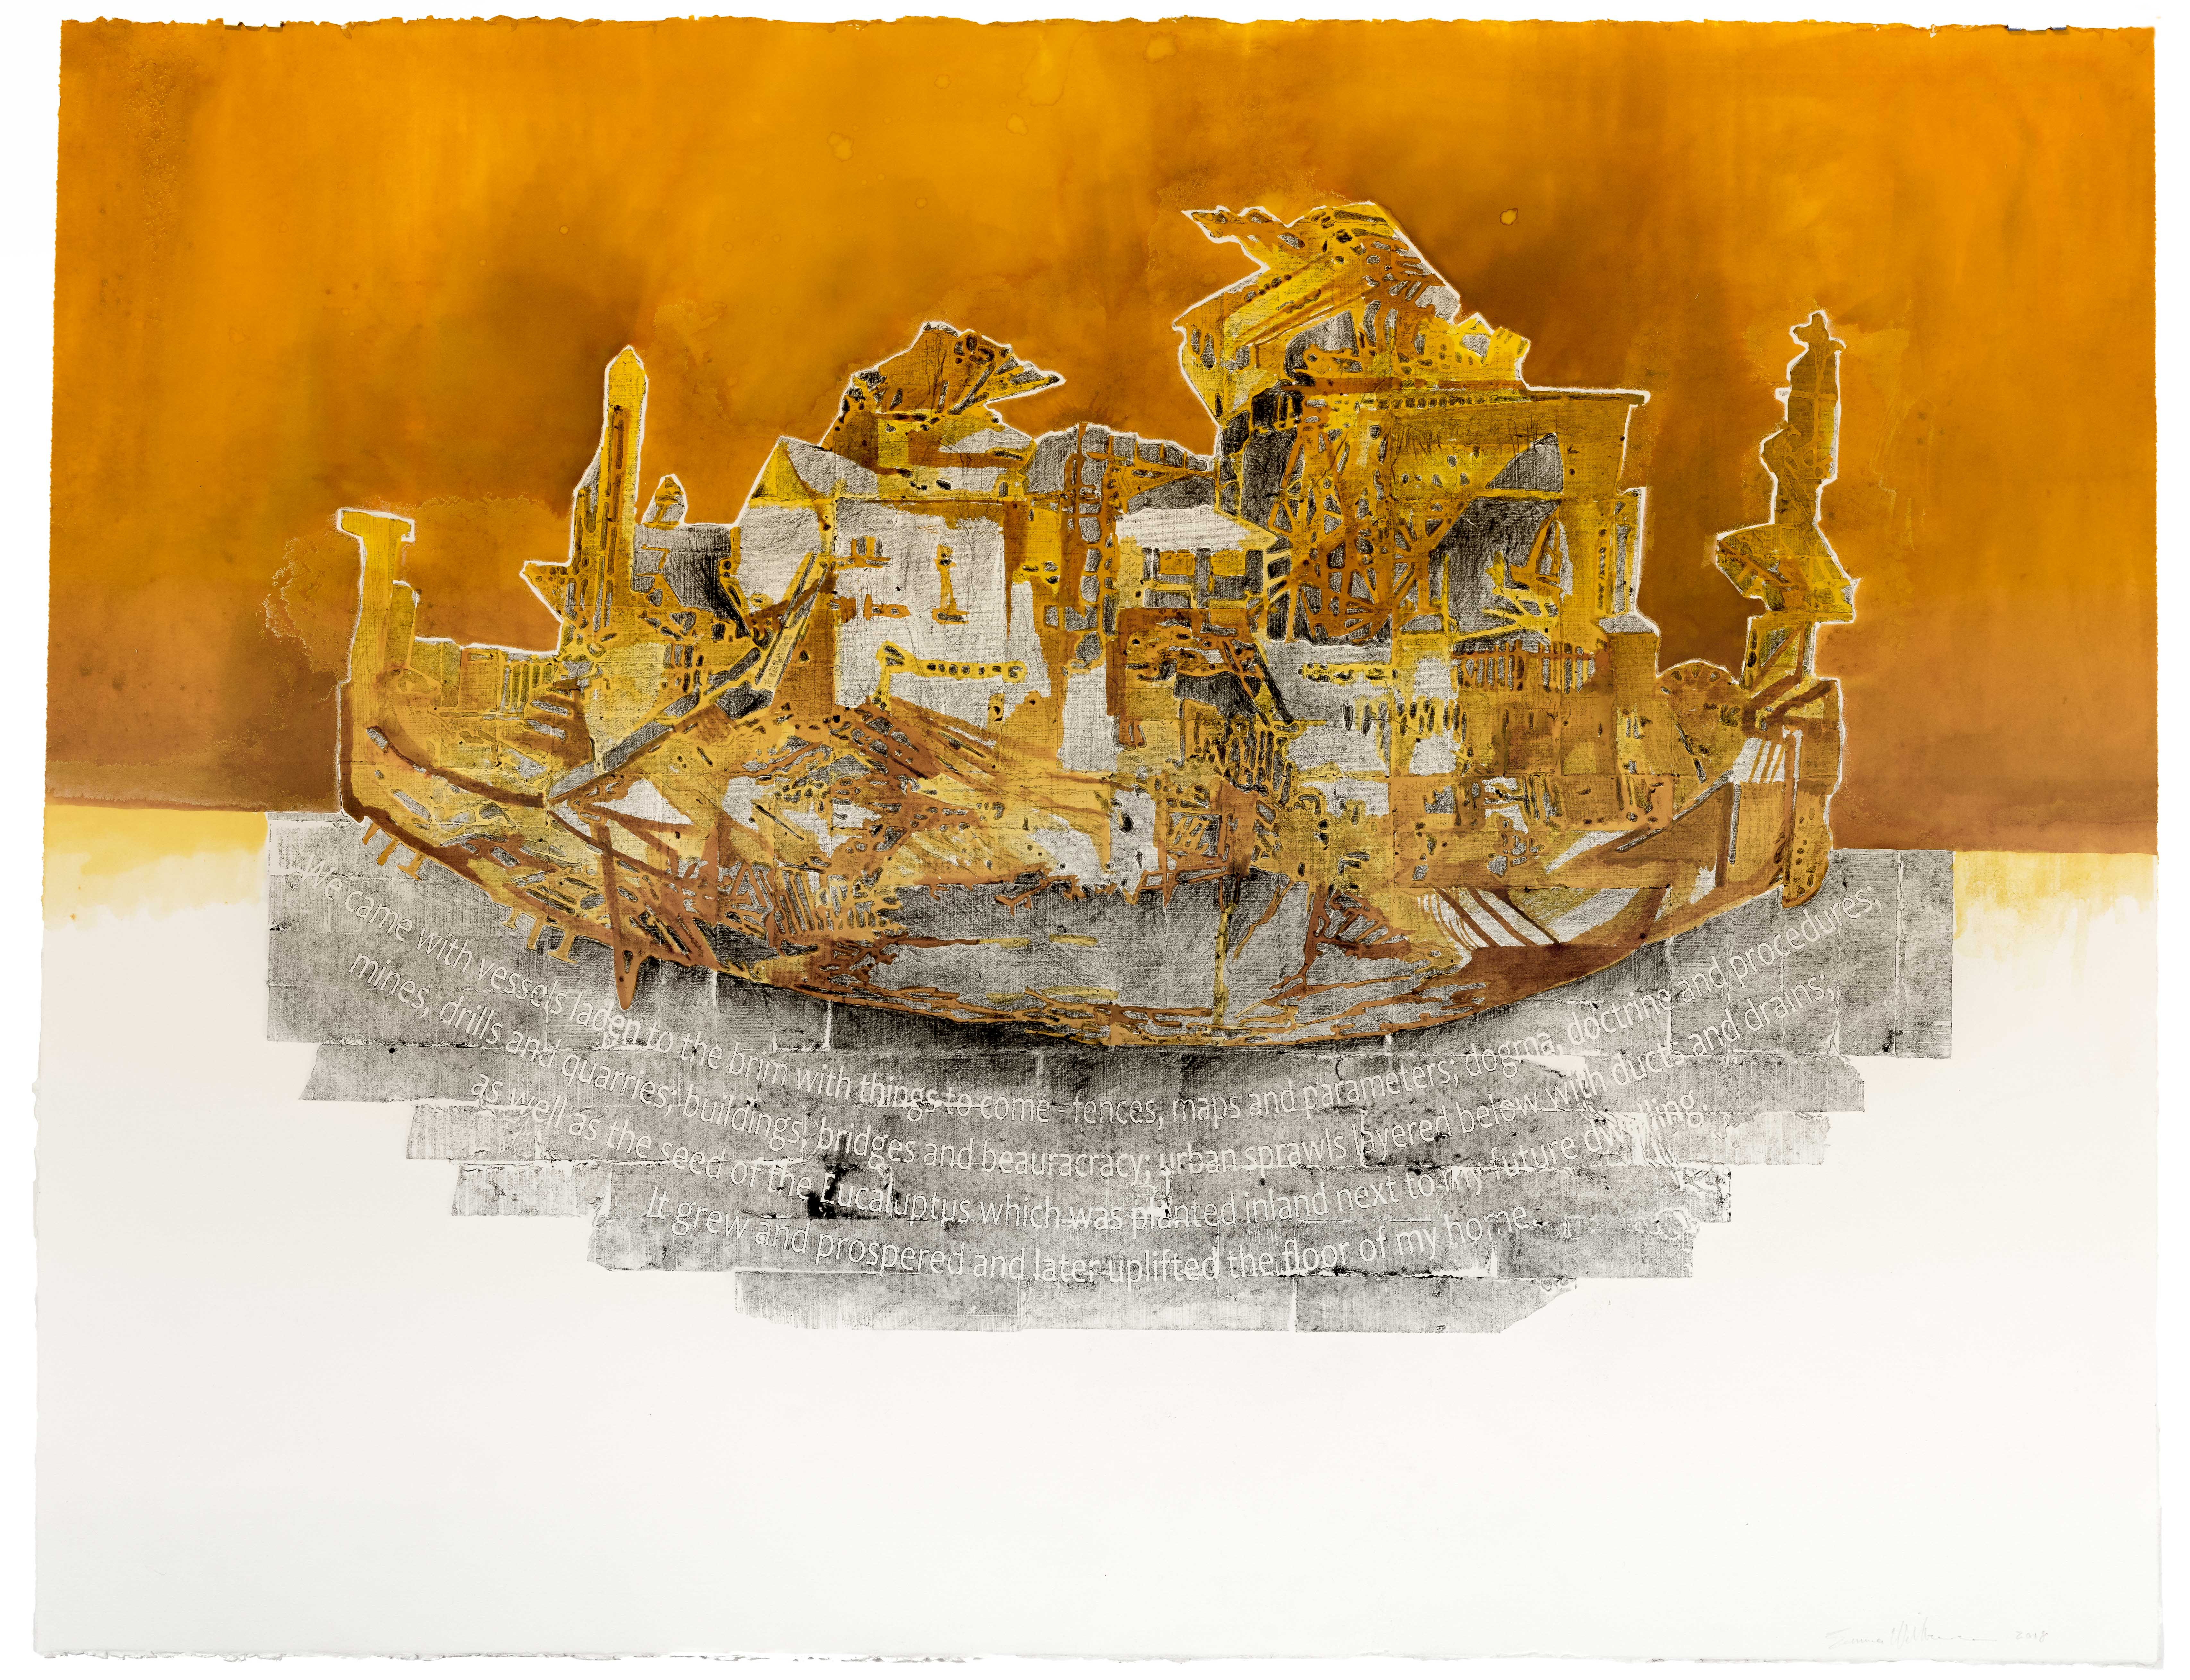 Vessels laden to the brim _ 1020x820mm _ Collagaph, hand coloured with ochre pigment on Fabriano Rosapina